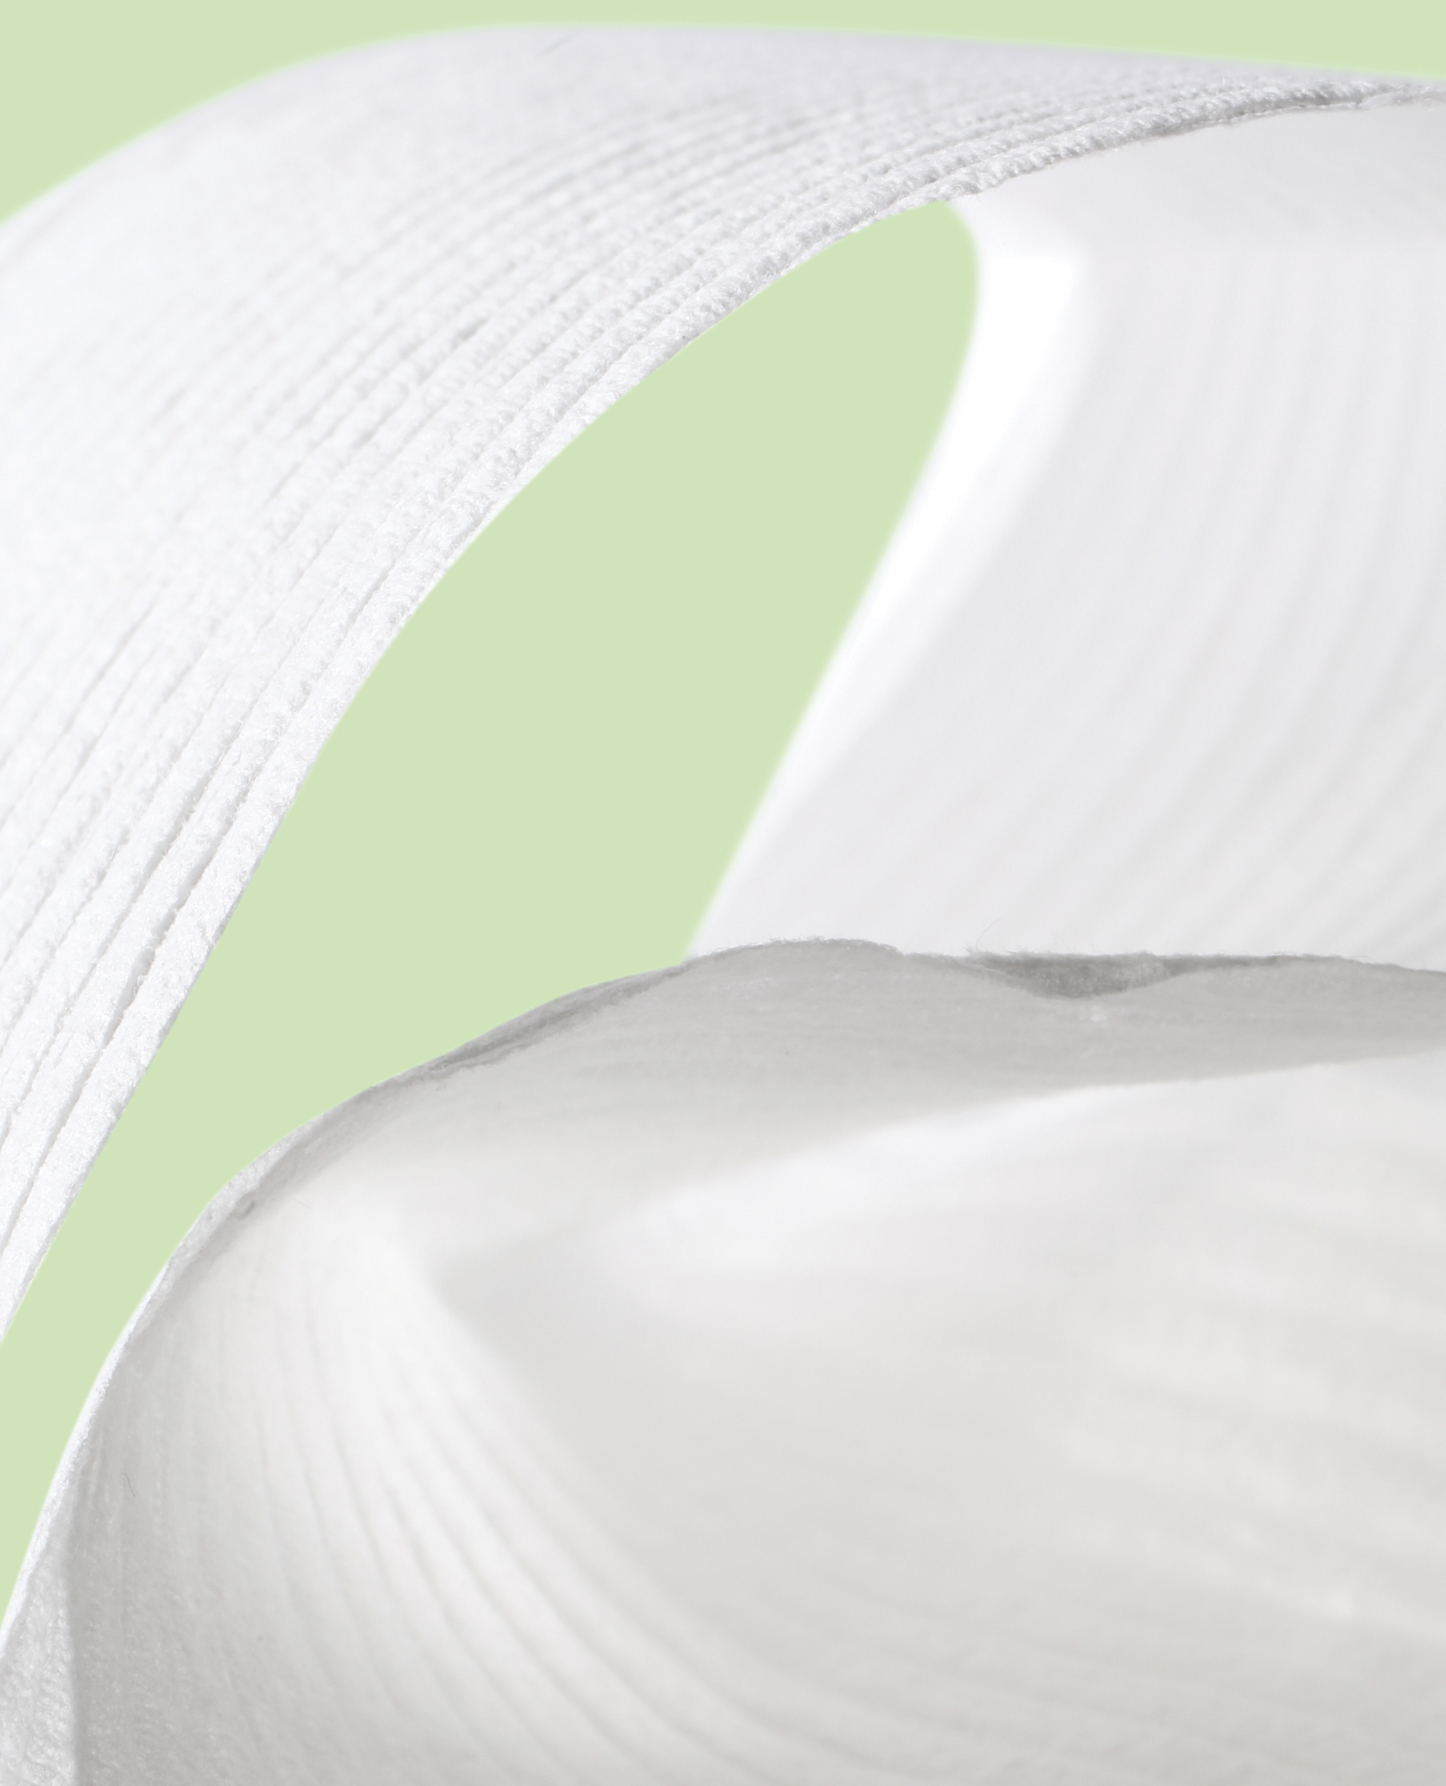 A close-up of a roll of toilet paper.